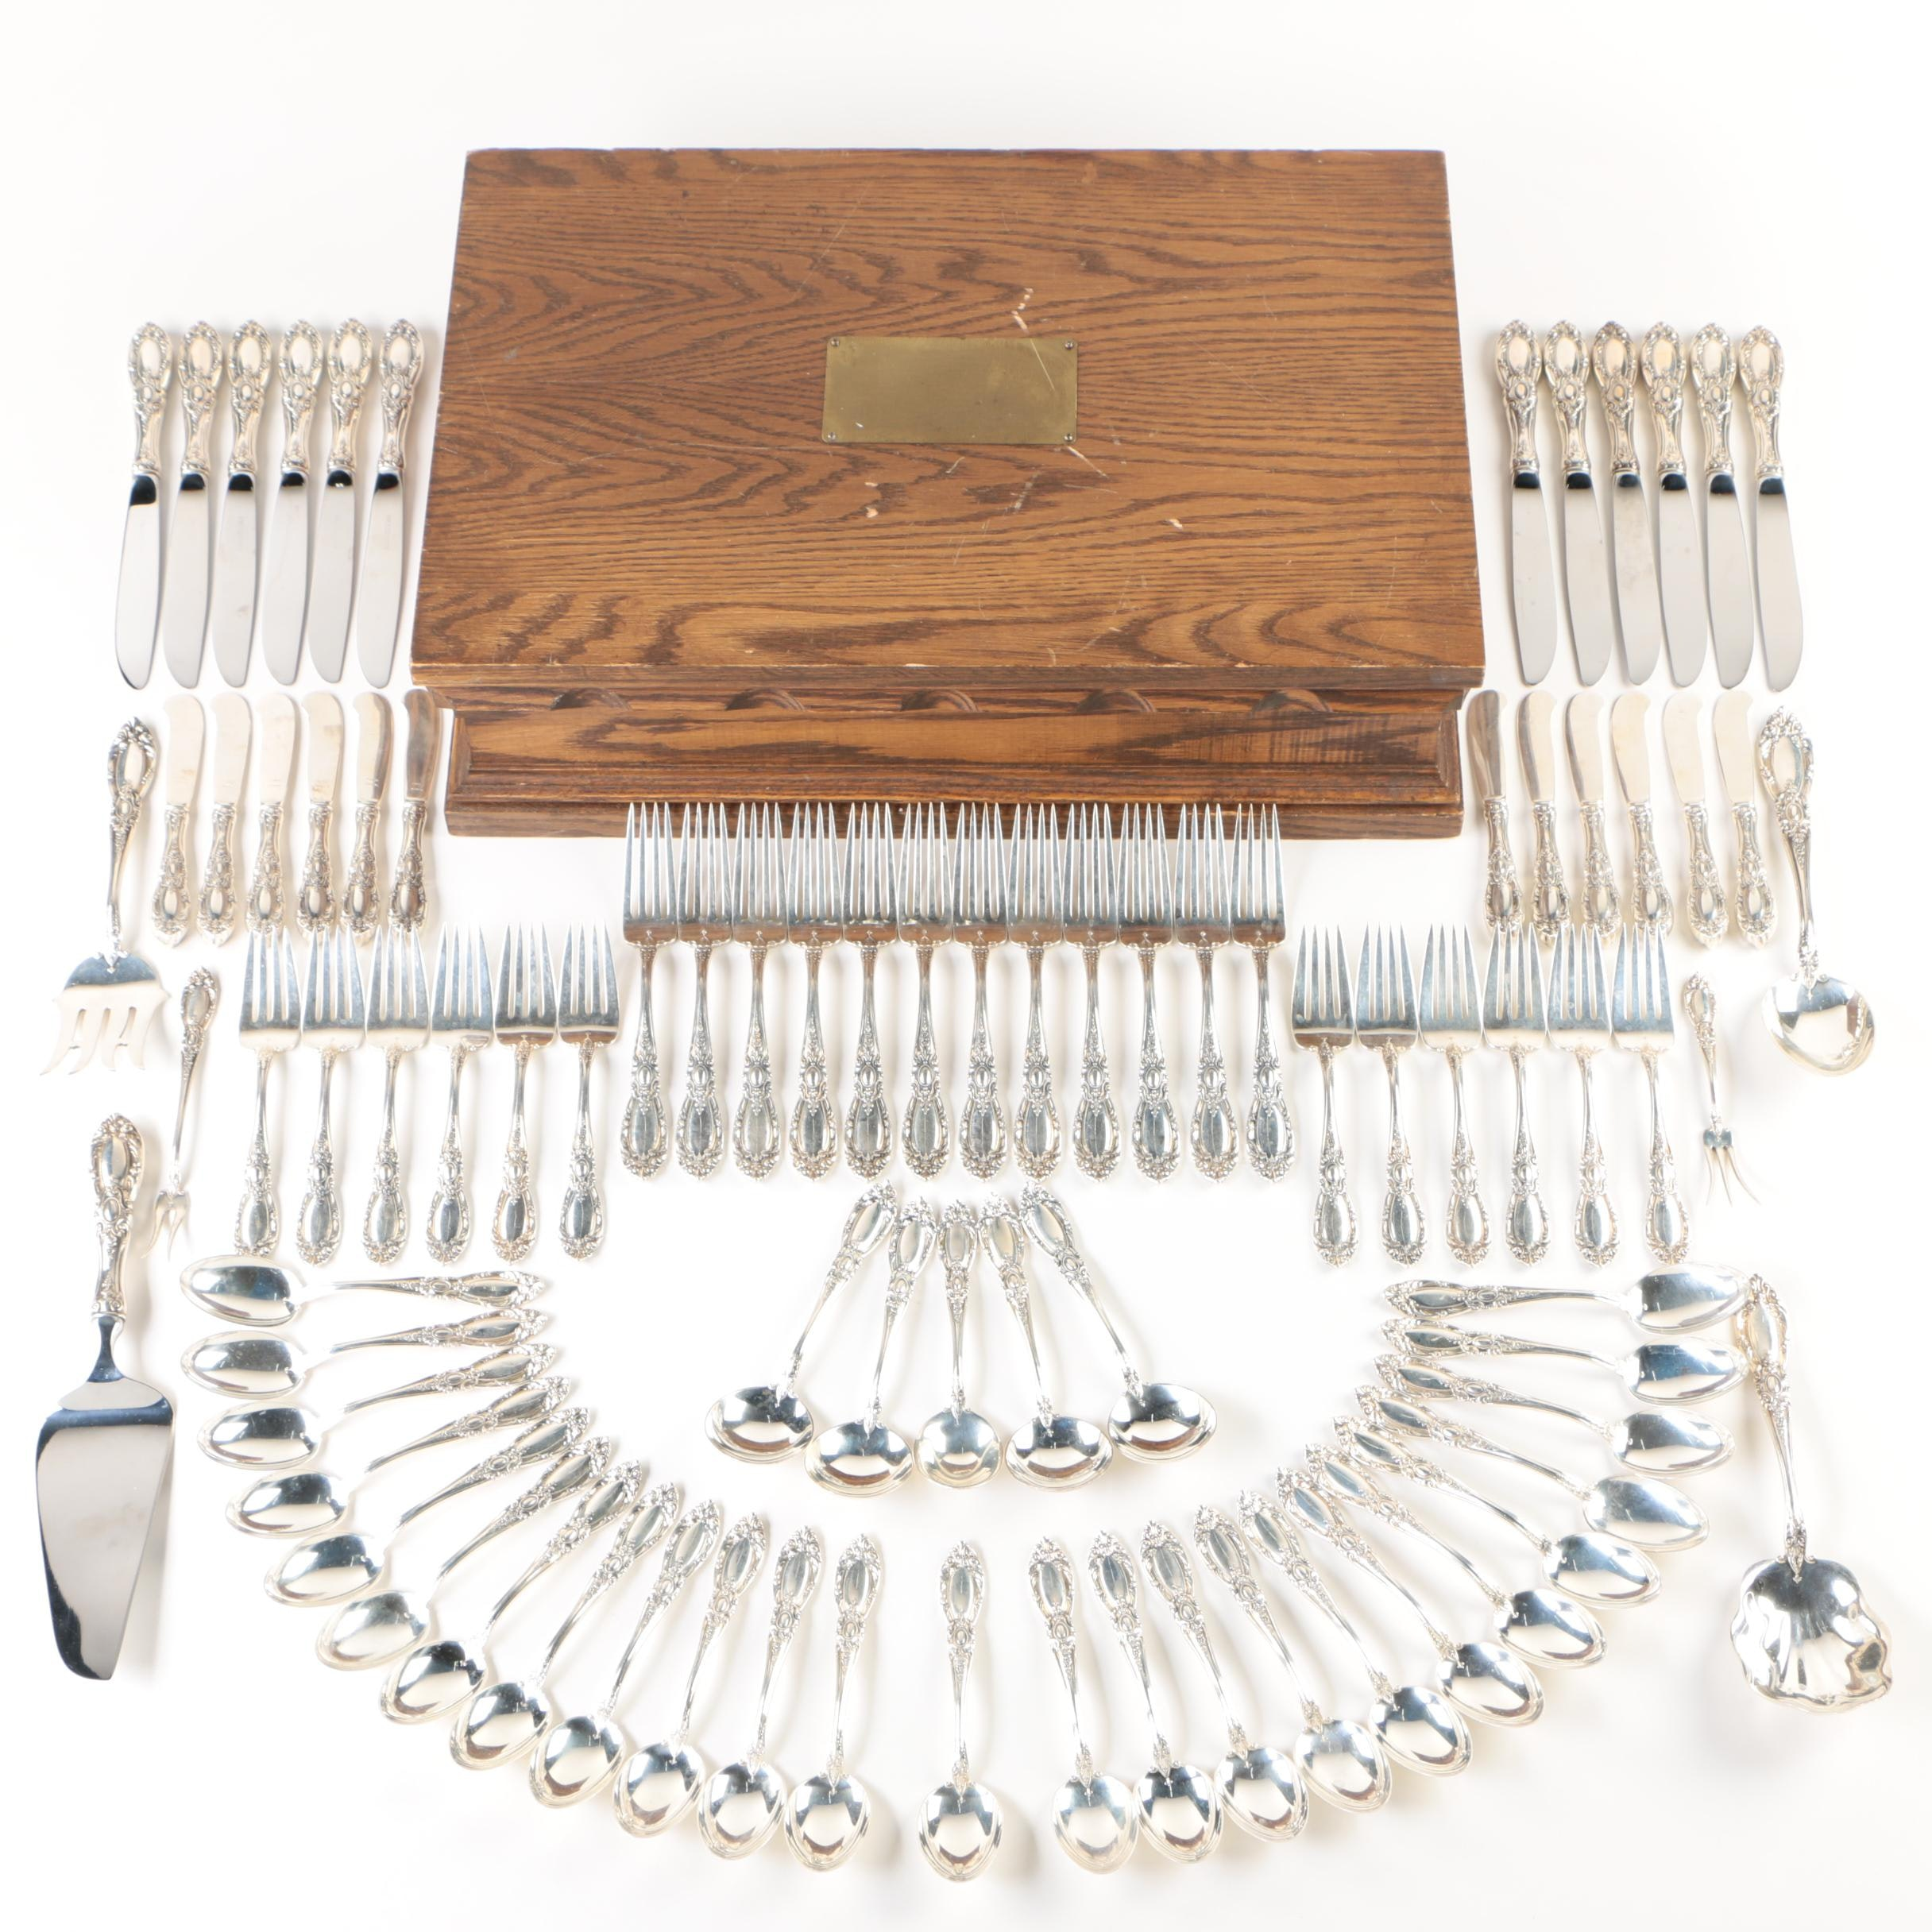 """Towle """"King Richard"""" Sterling Flatware Set with Chest, Early 20th Century"""